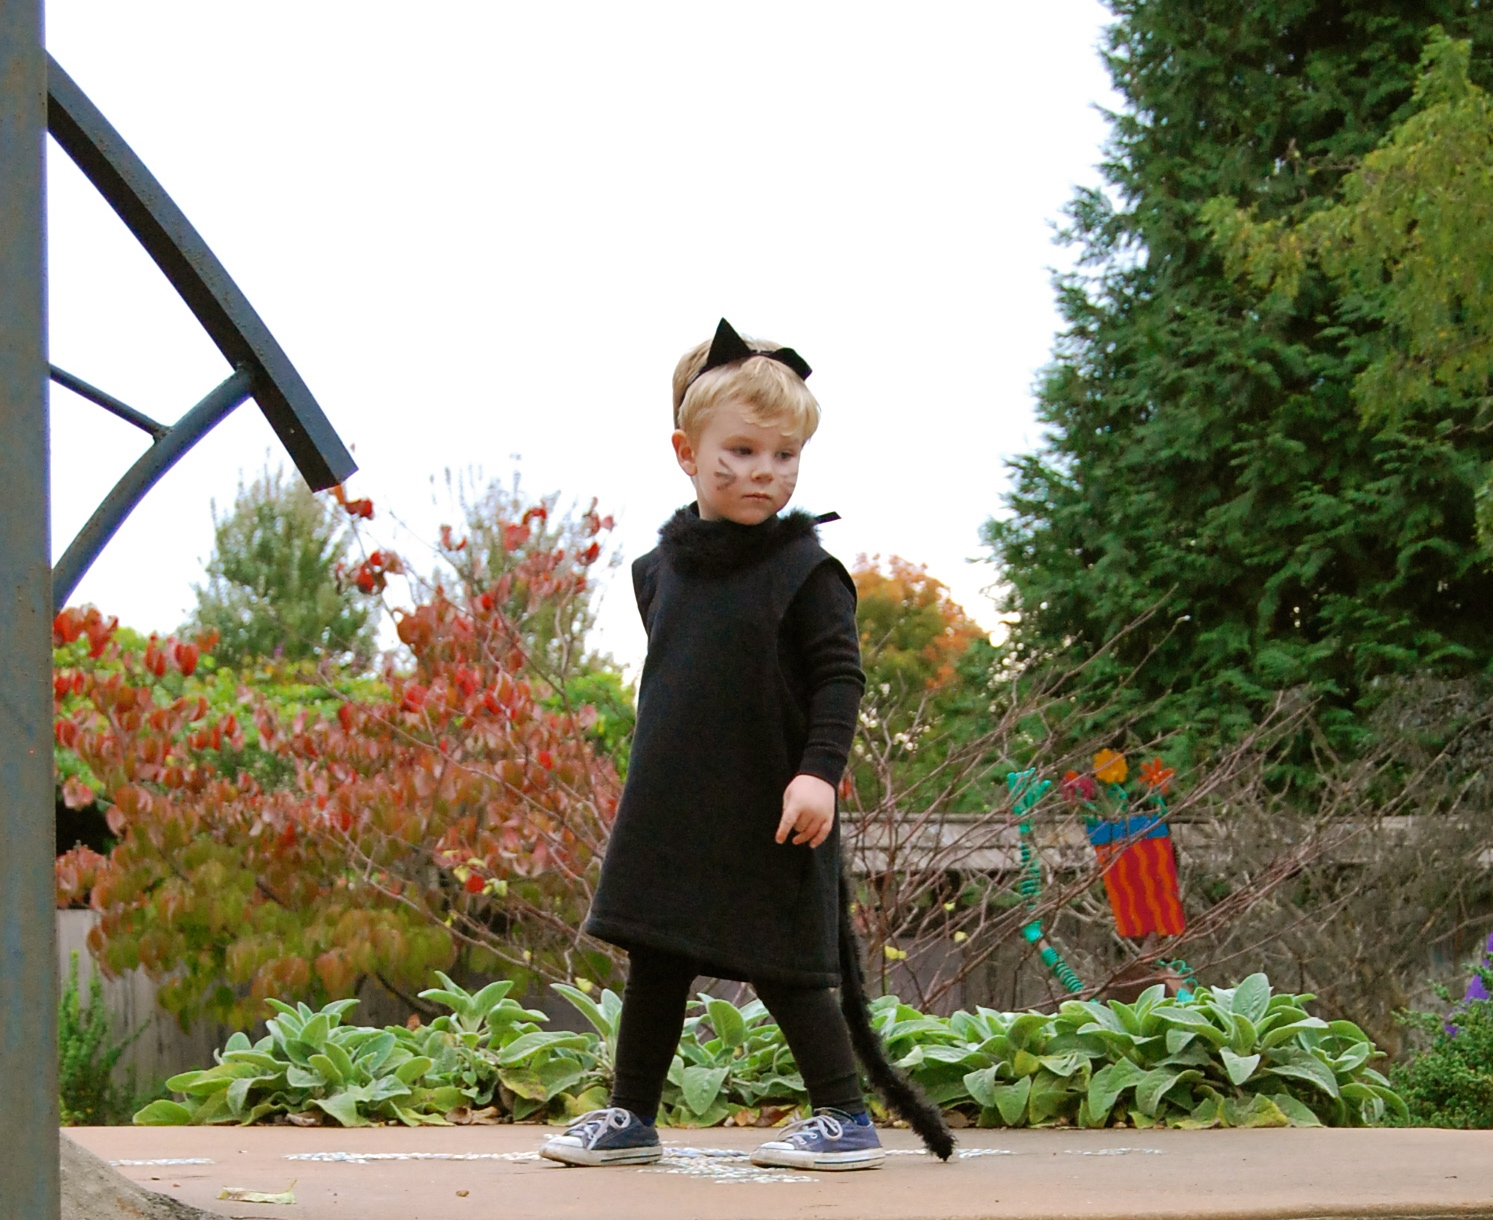 Need a last minute kids Halloween costume? This DIY cat costume is simple and cute!